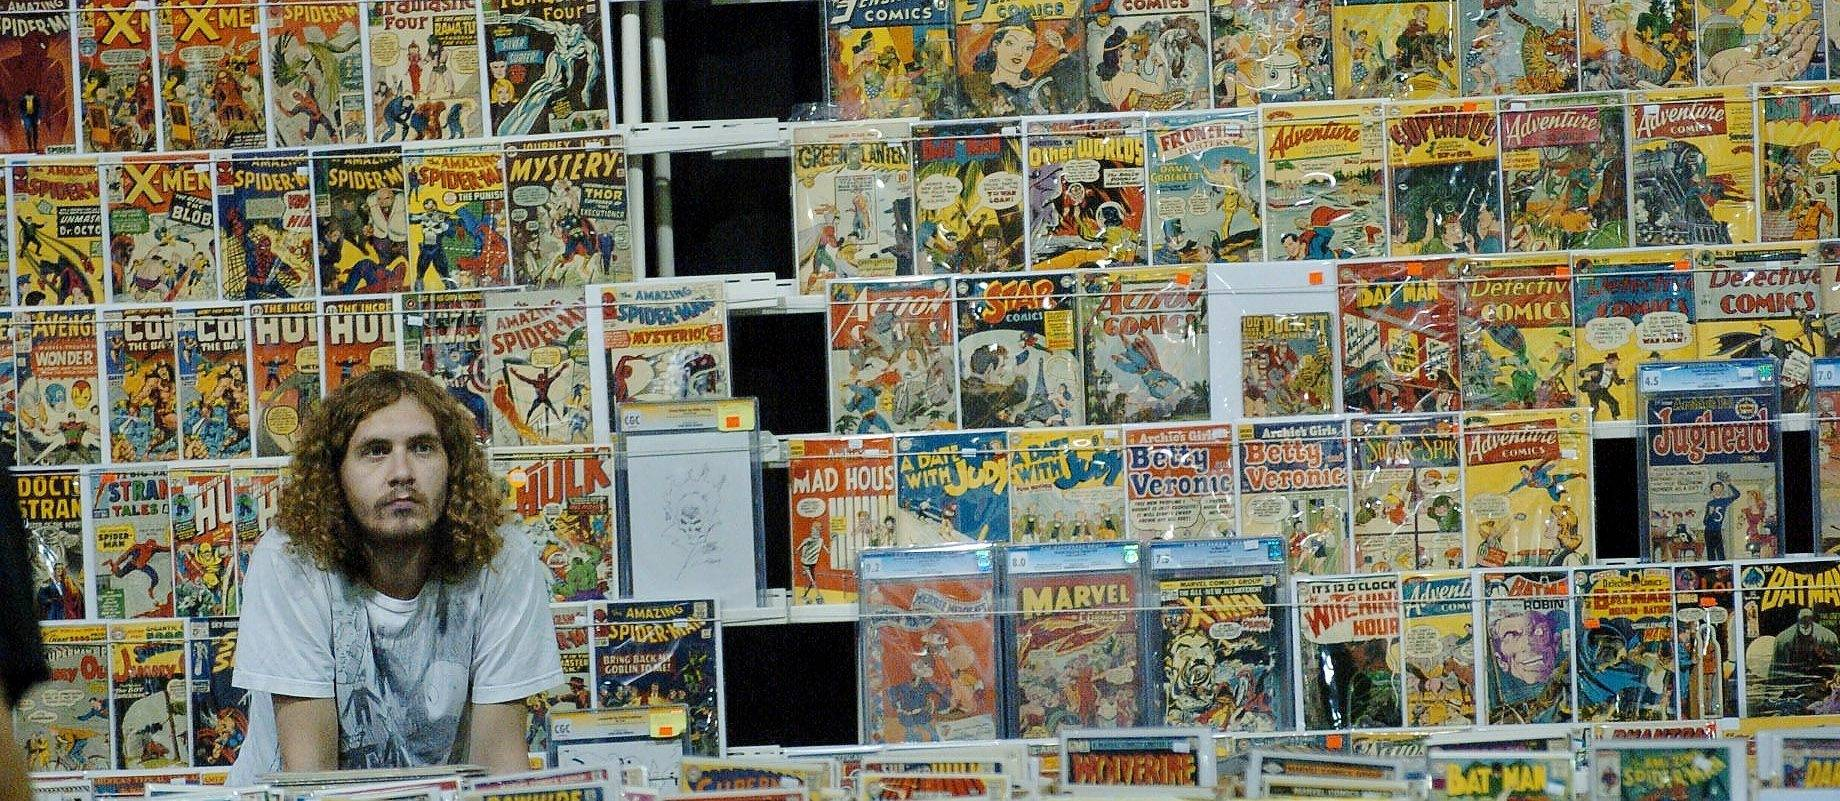 Al Stoltz of Basement Comics from Falls Church, Va., is set up with his comic stand.